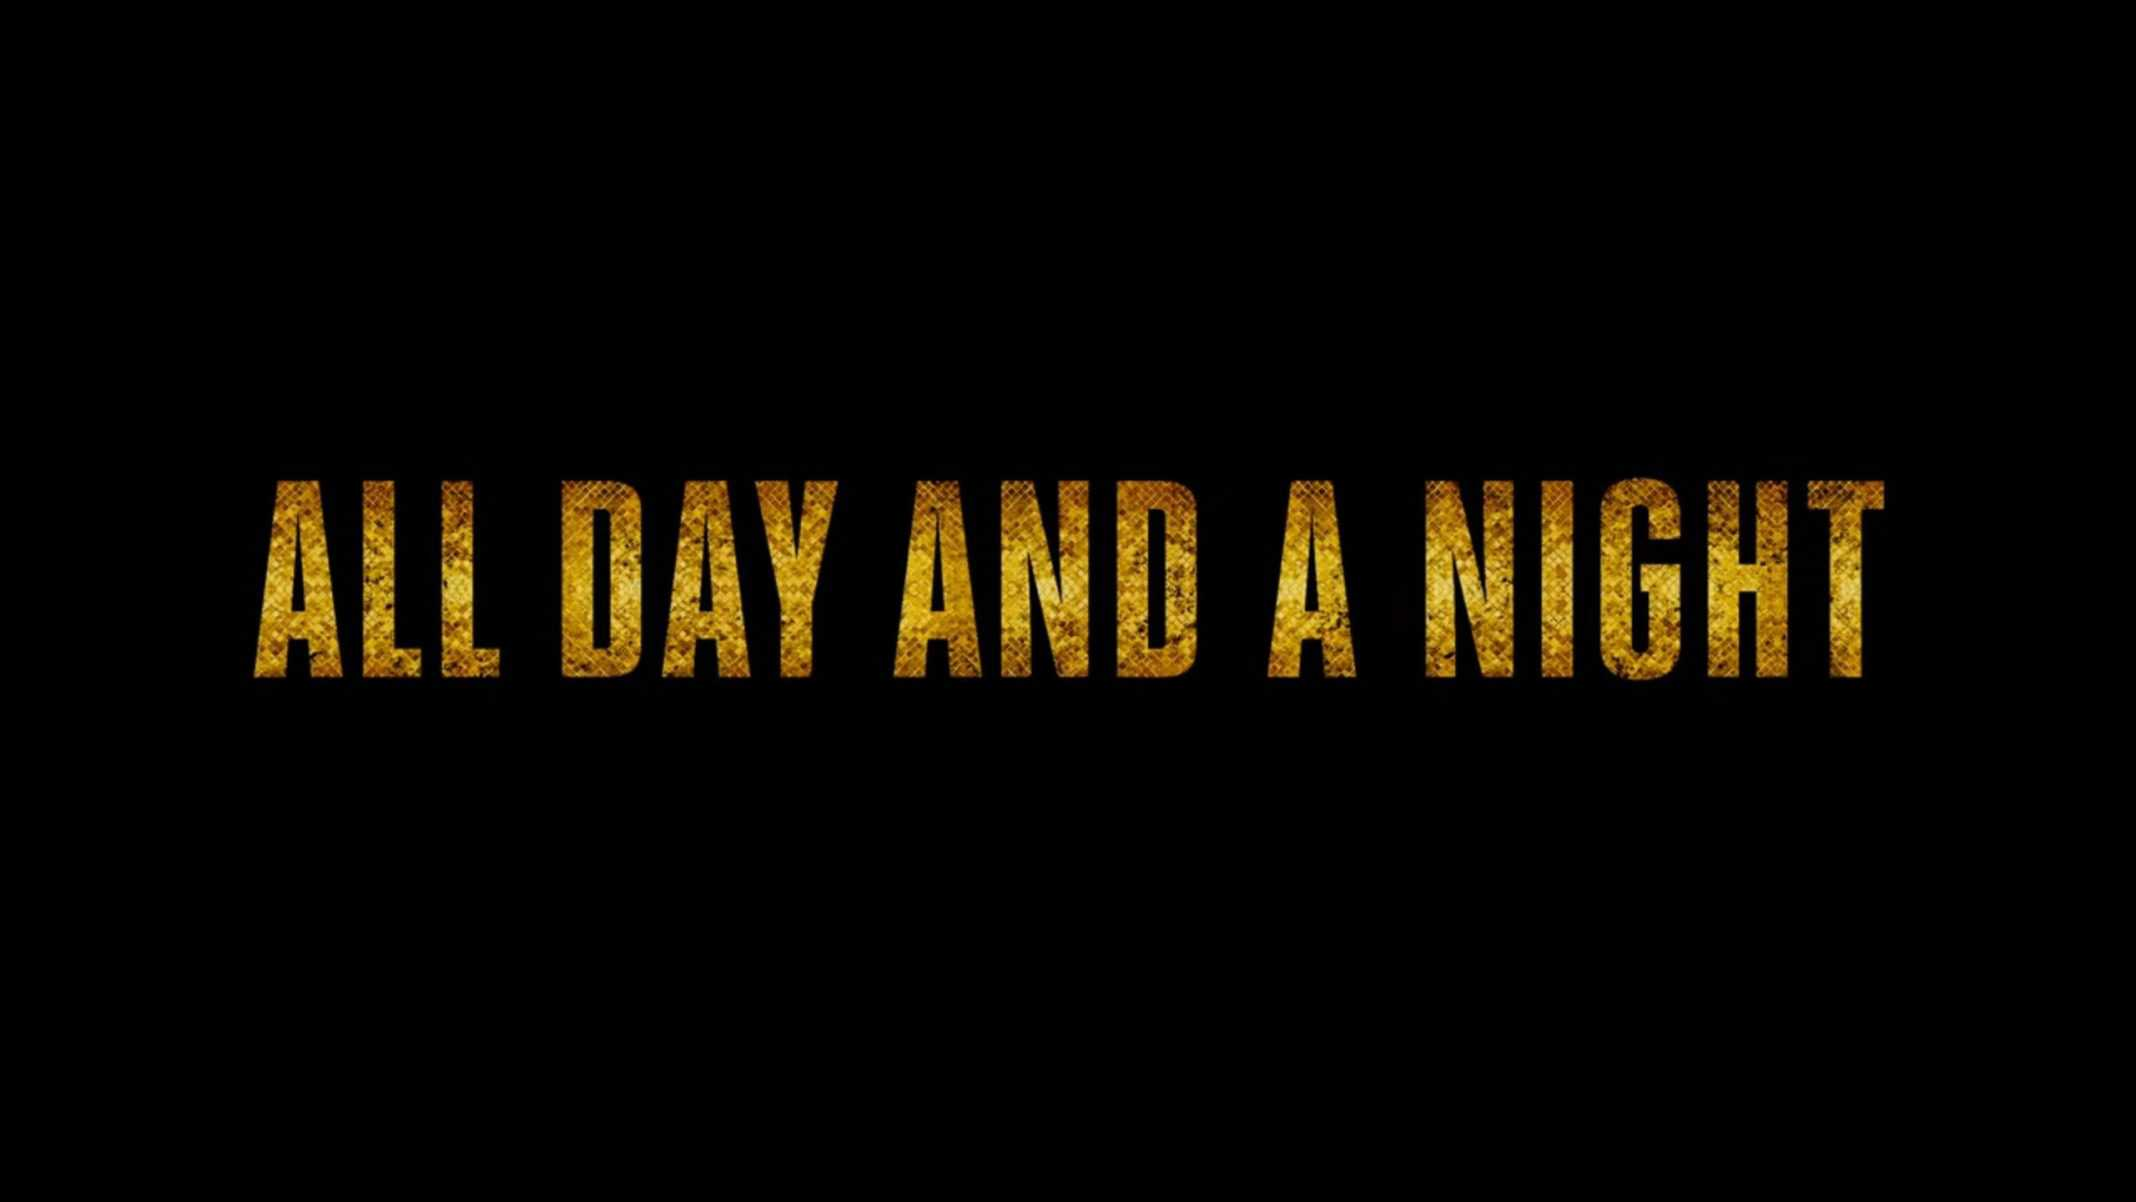 Title Card - All Day And A Night (2020) - Netflix